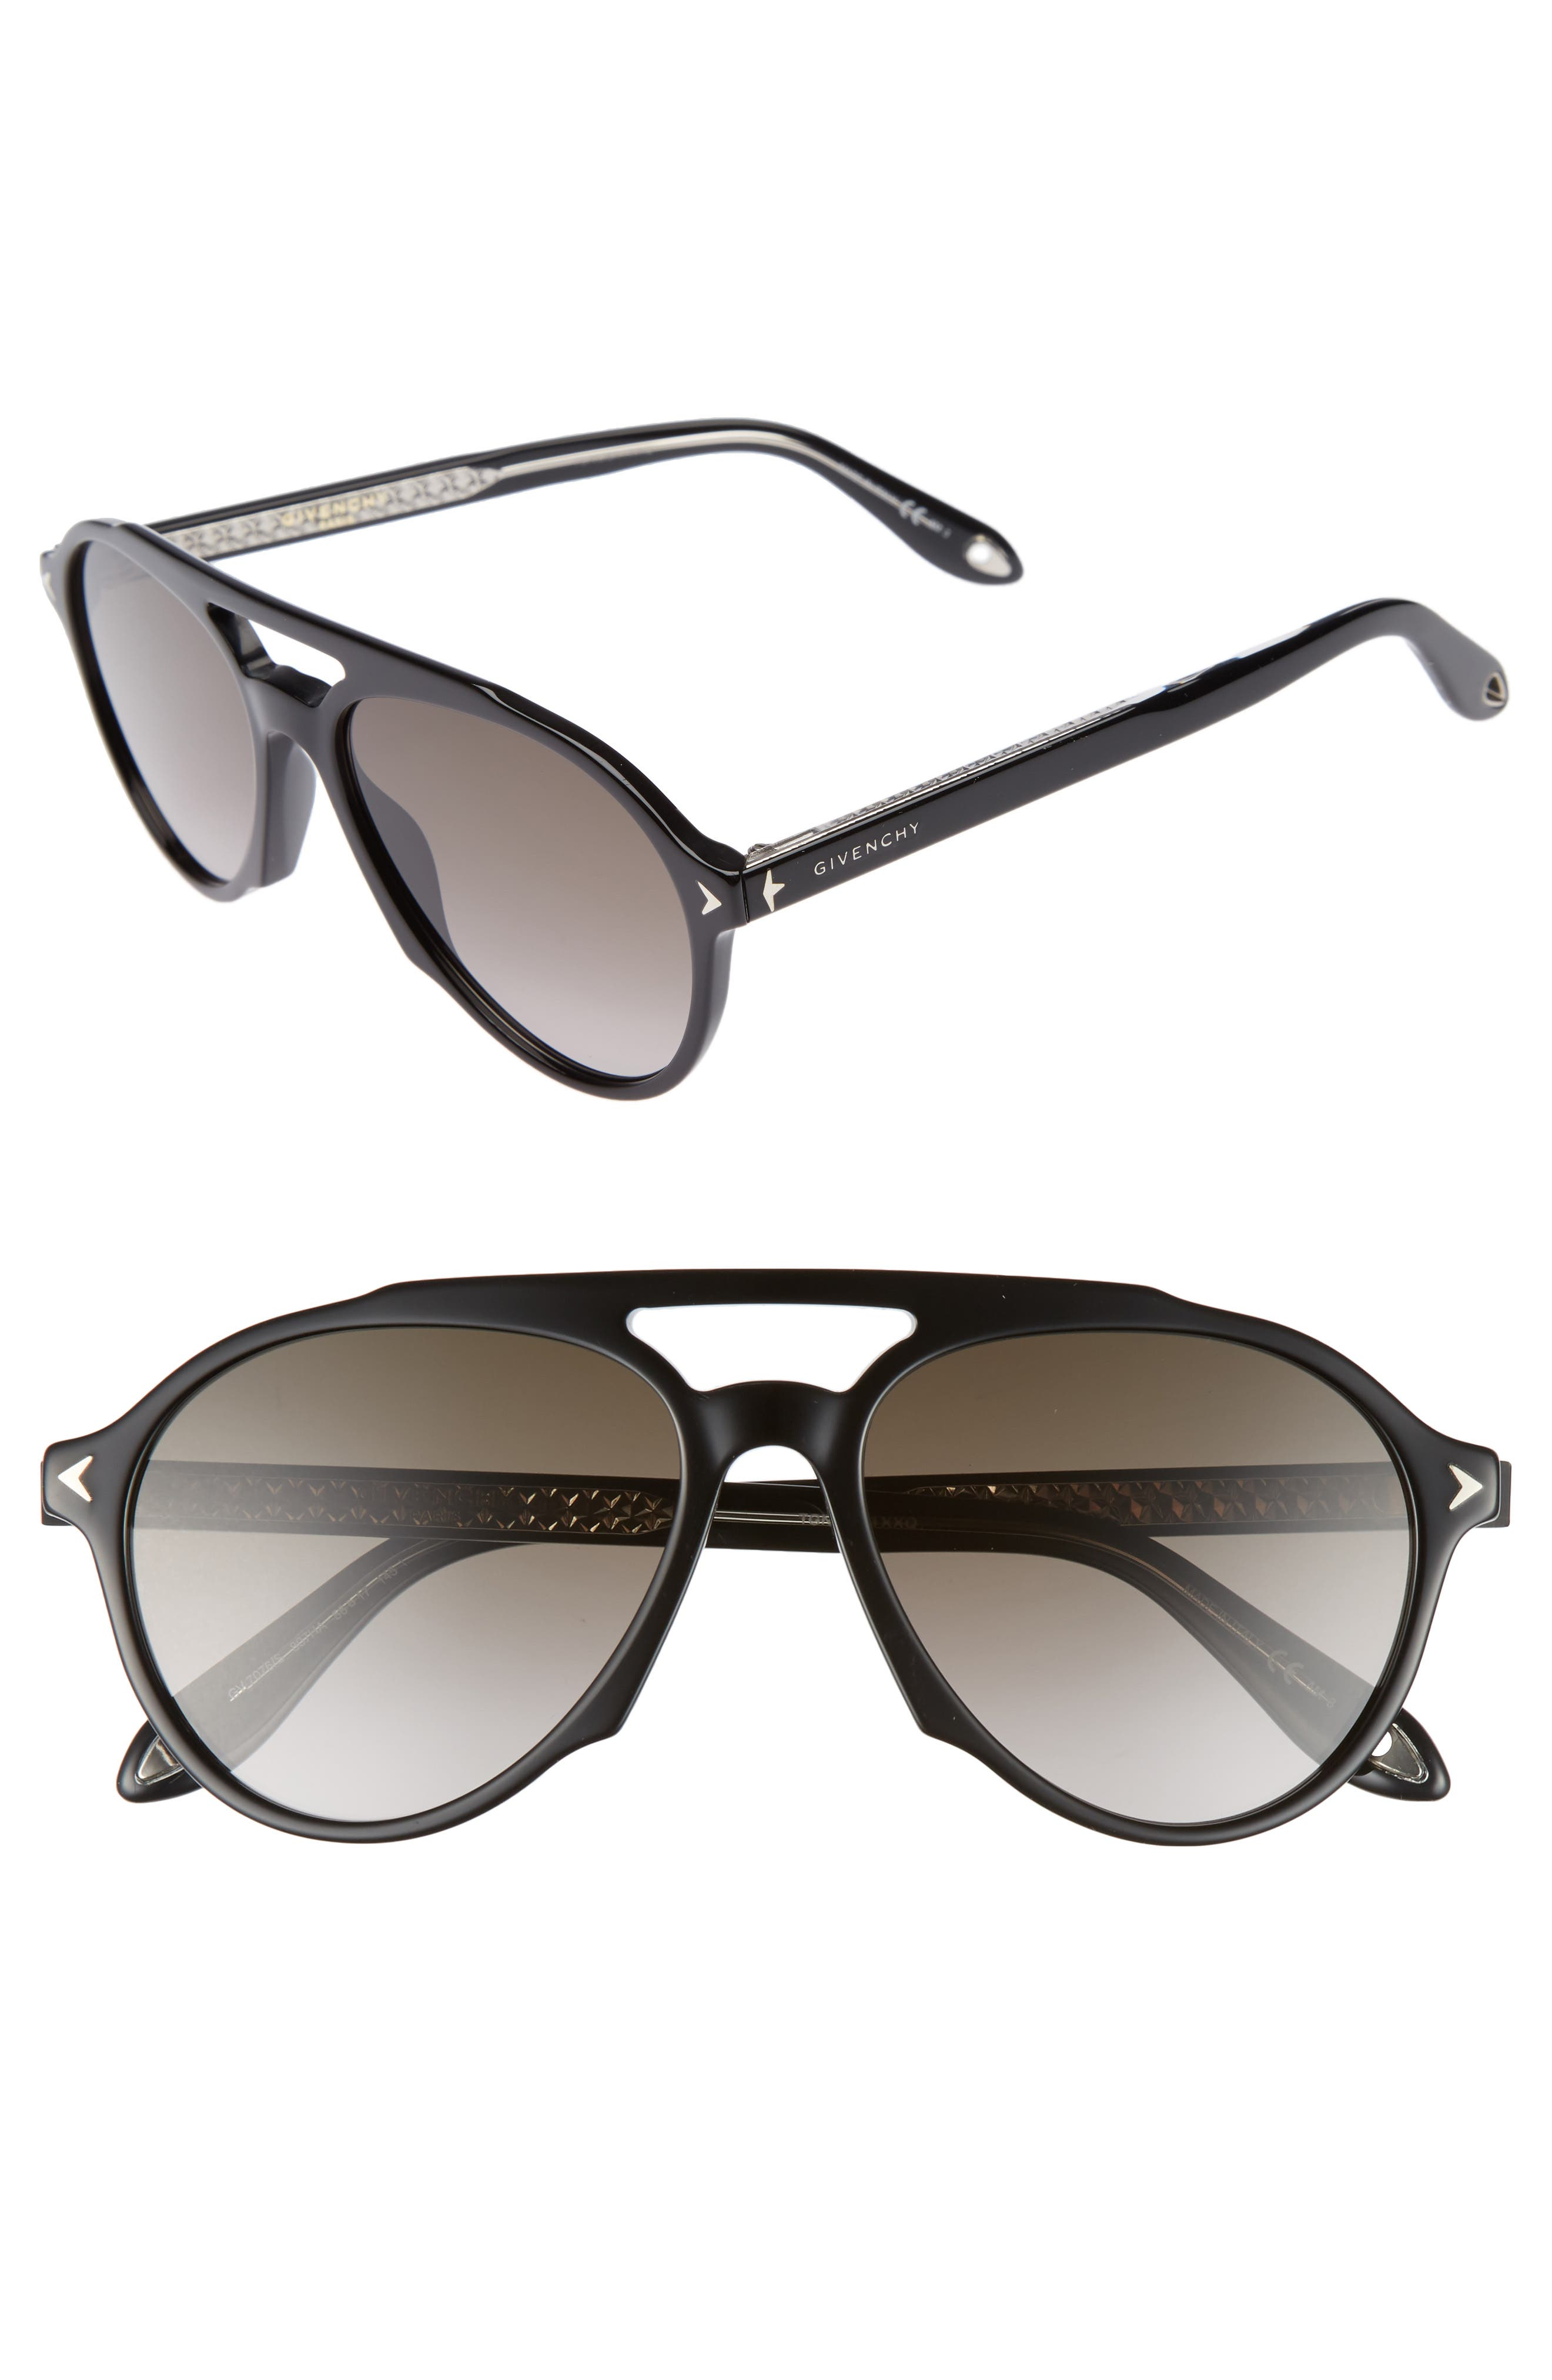 Givenchy 56mm Navigator Sunglasses